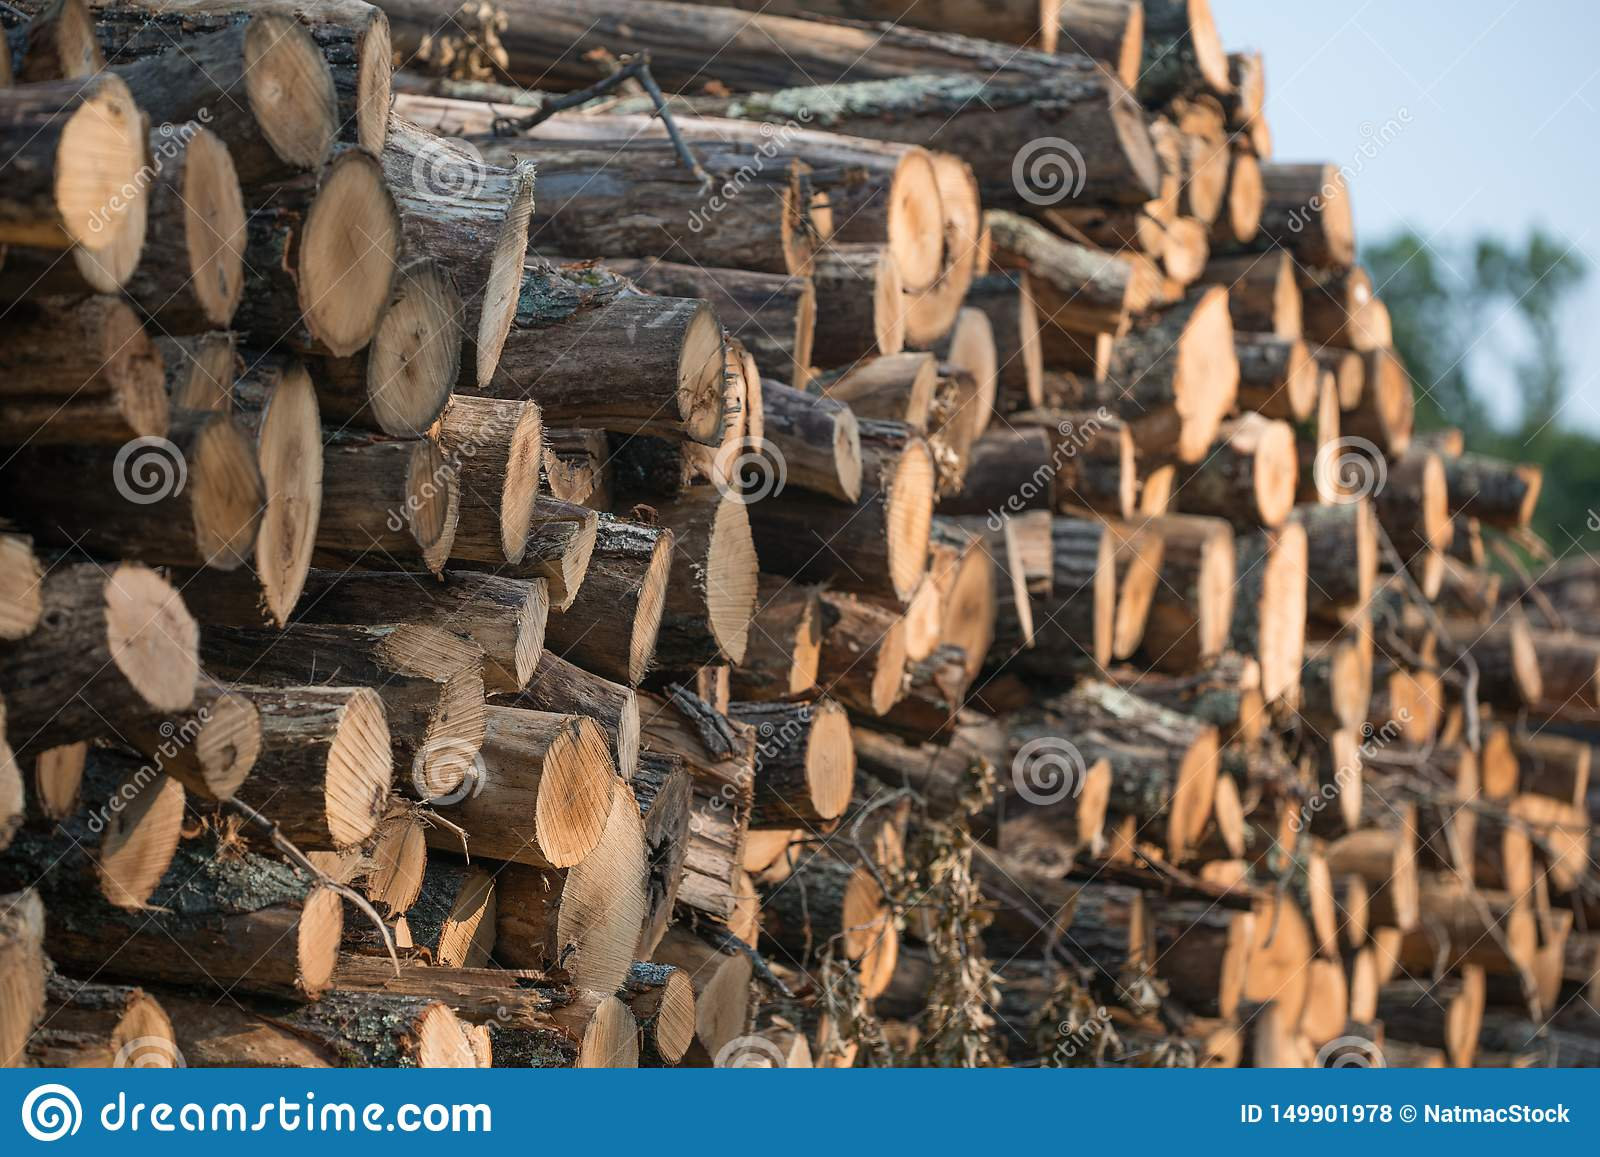 Piles of stacked logged trees from Governor Knowles State Forest in Northern Wisconsin - DNR has working forests that are harveste